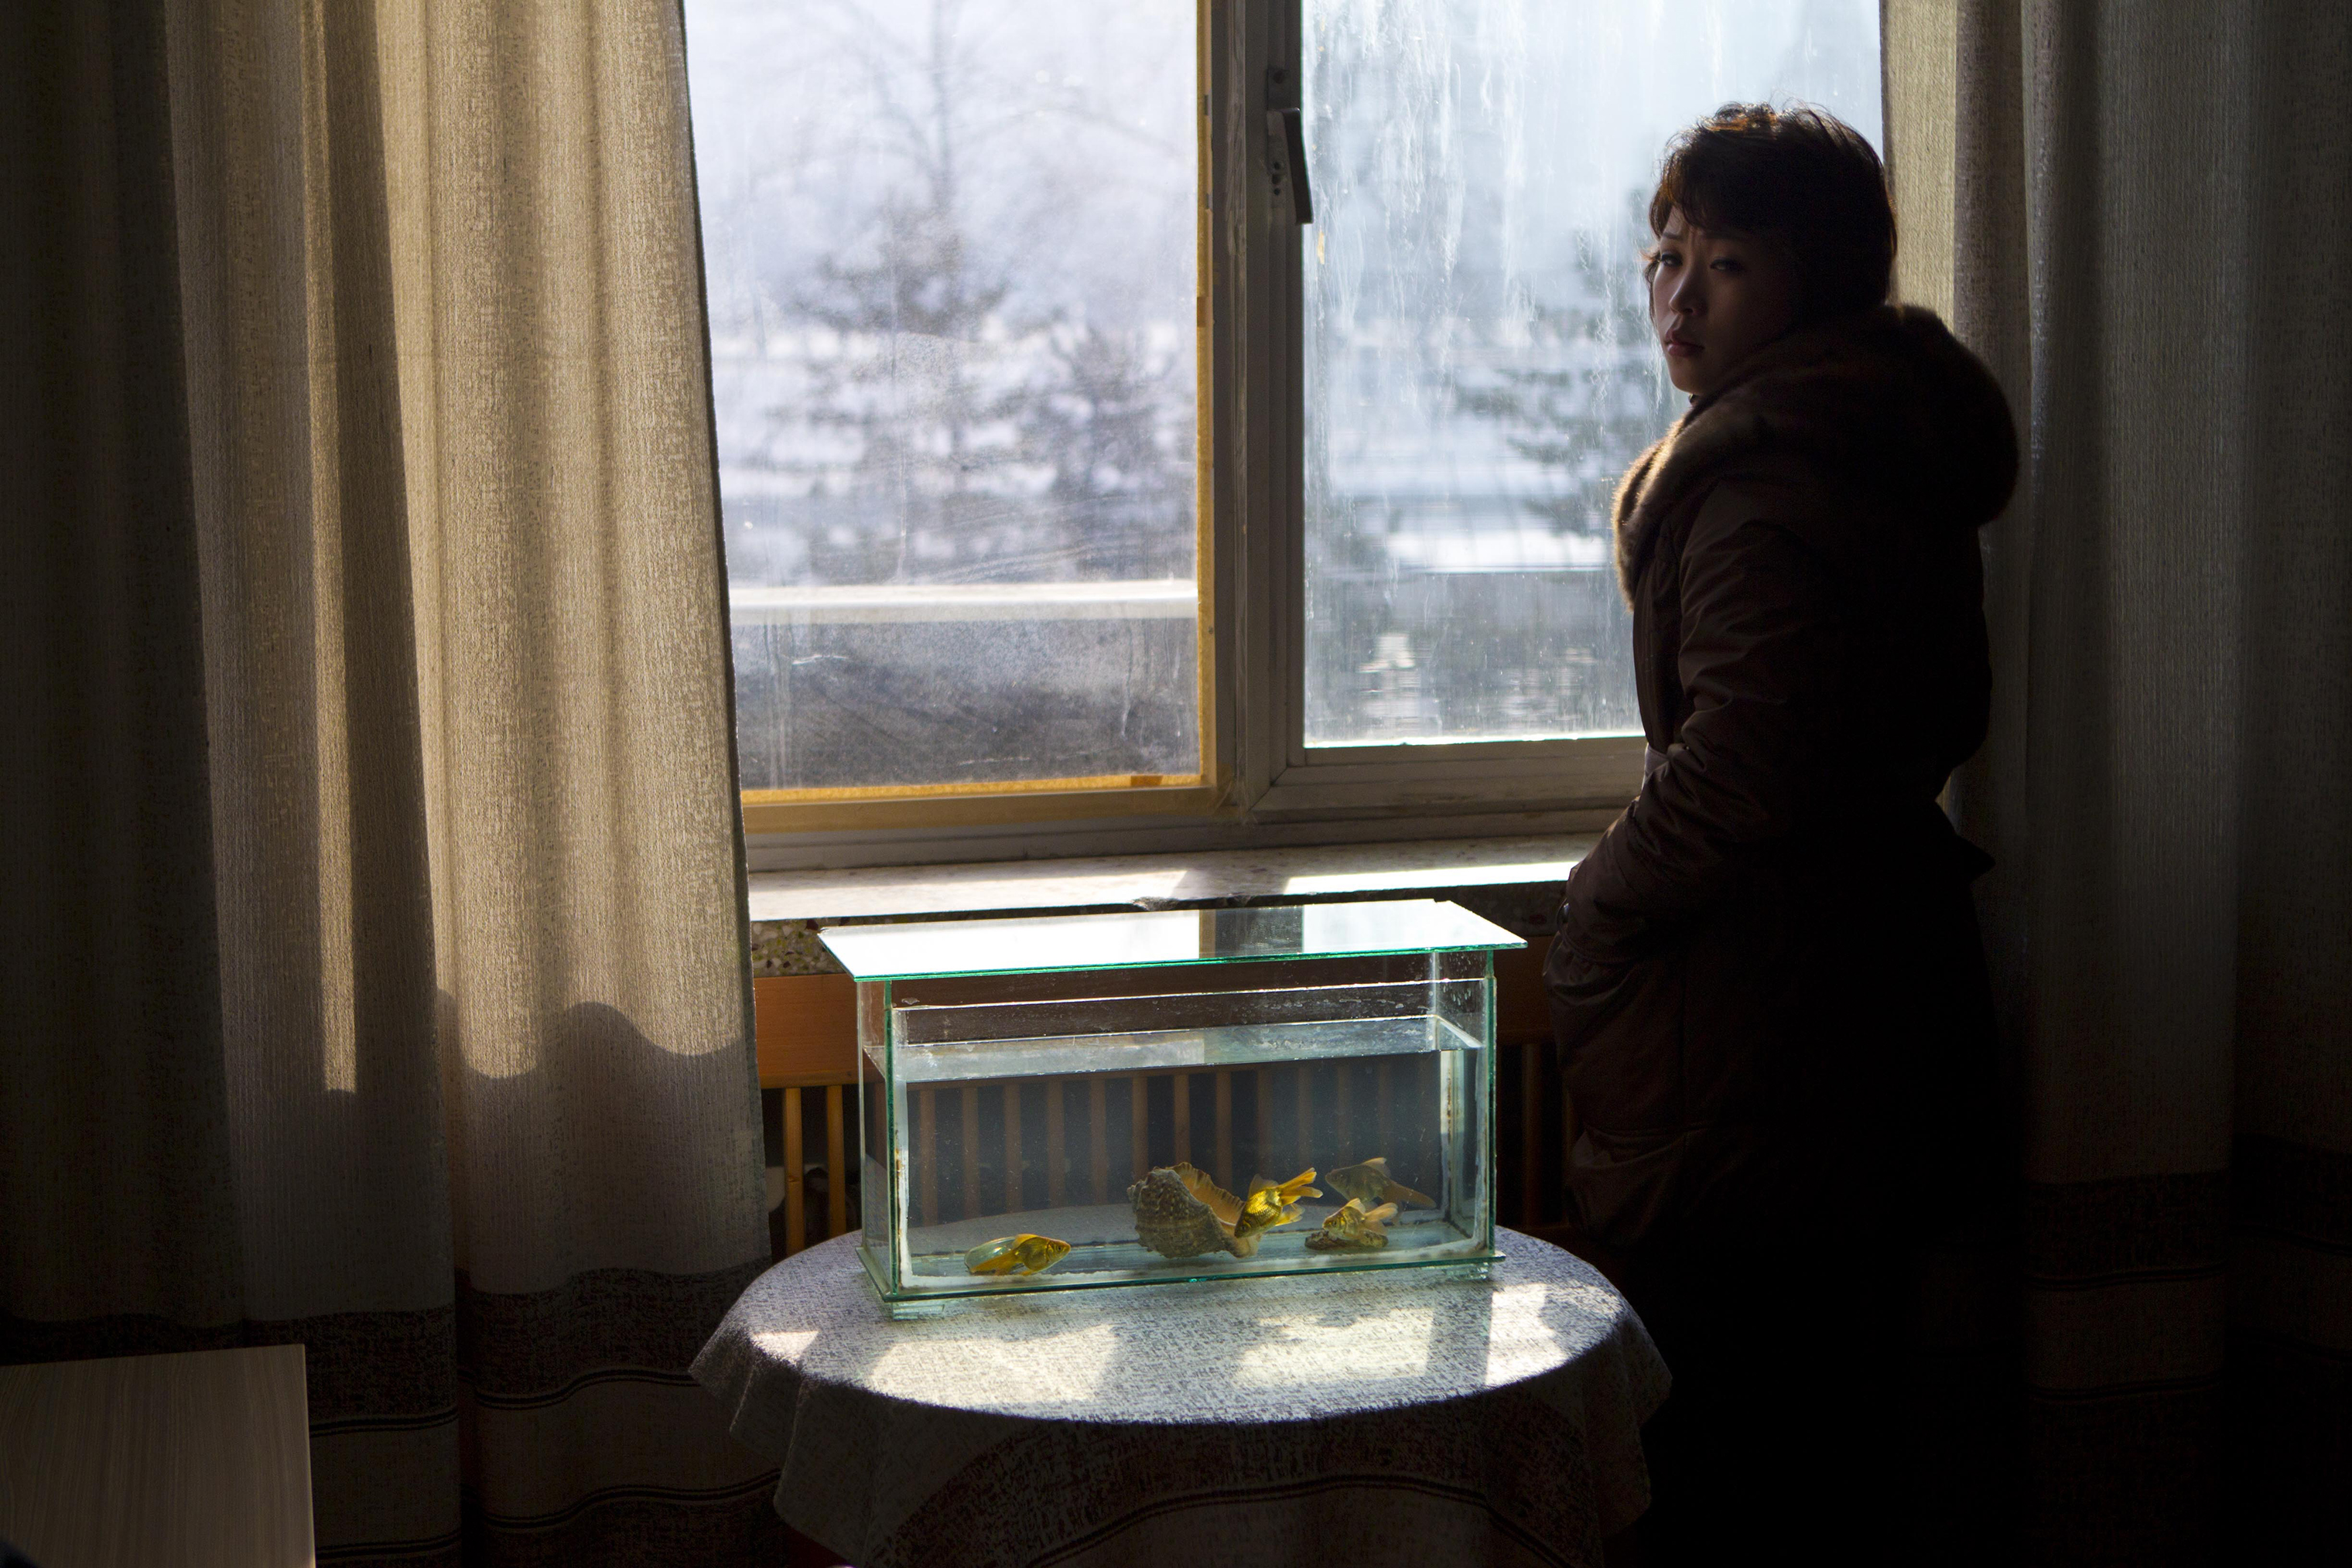 An office at the Korean Central News Agency building in Pyongyang on Jan. 16, 2012.